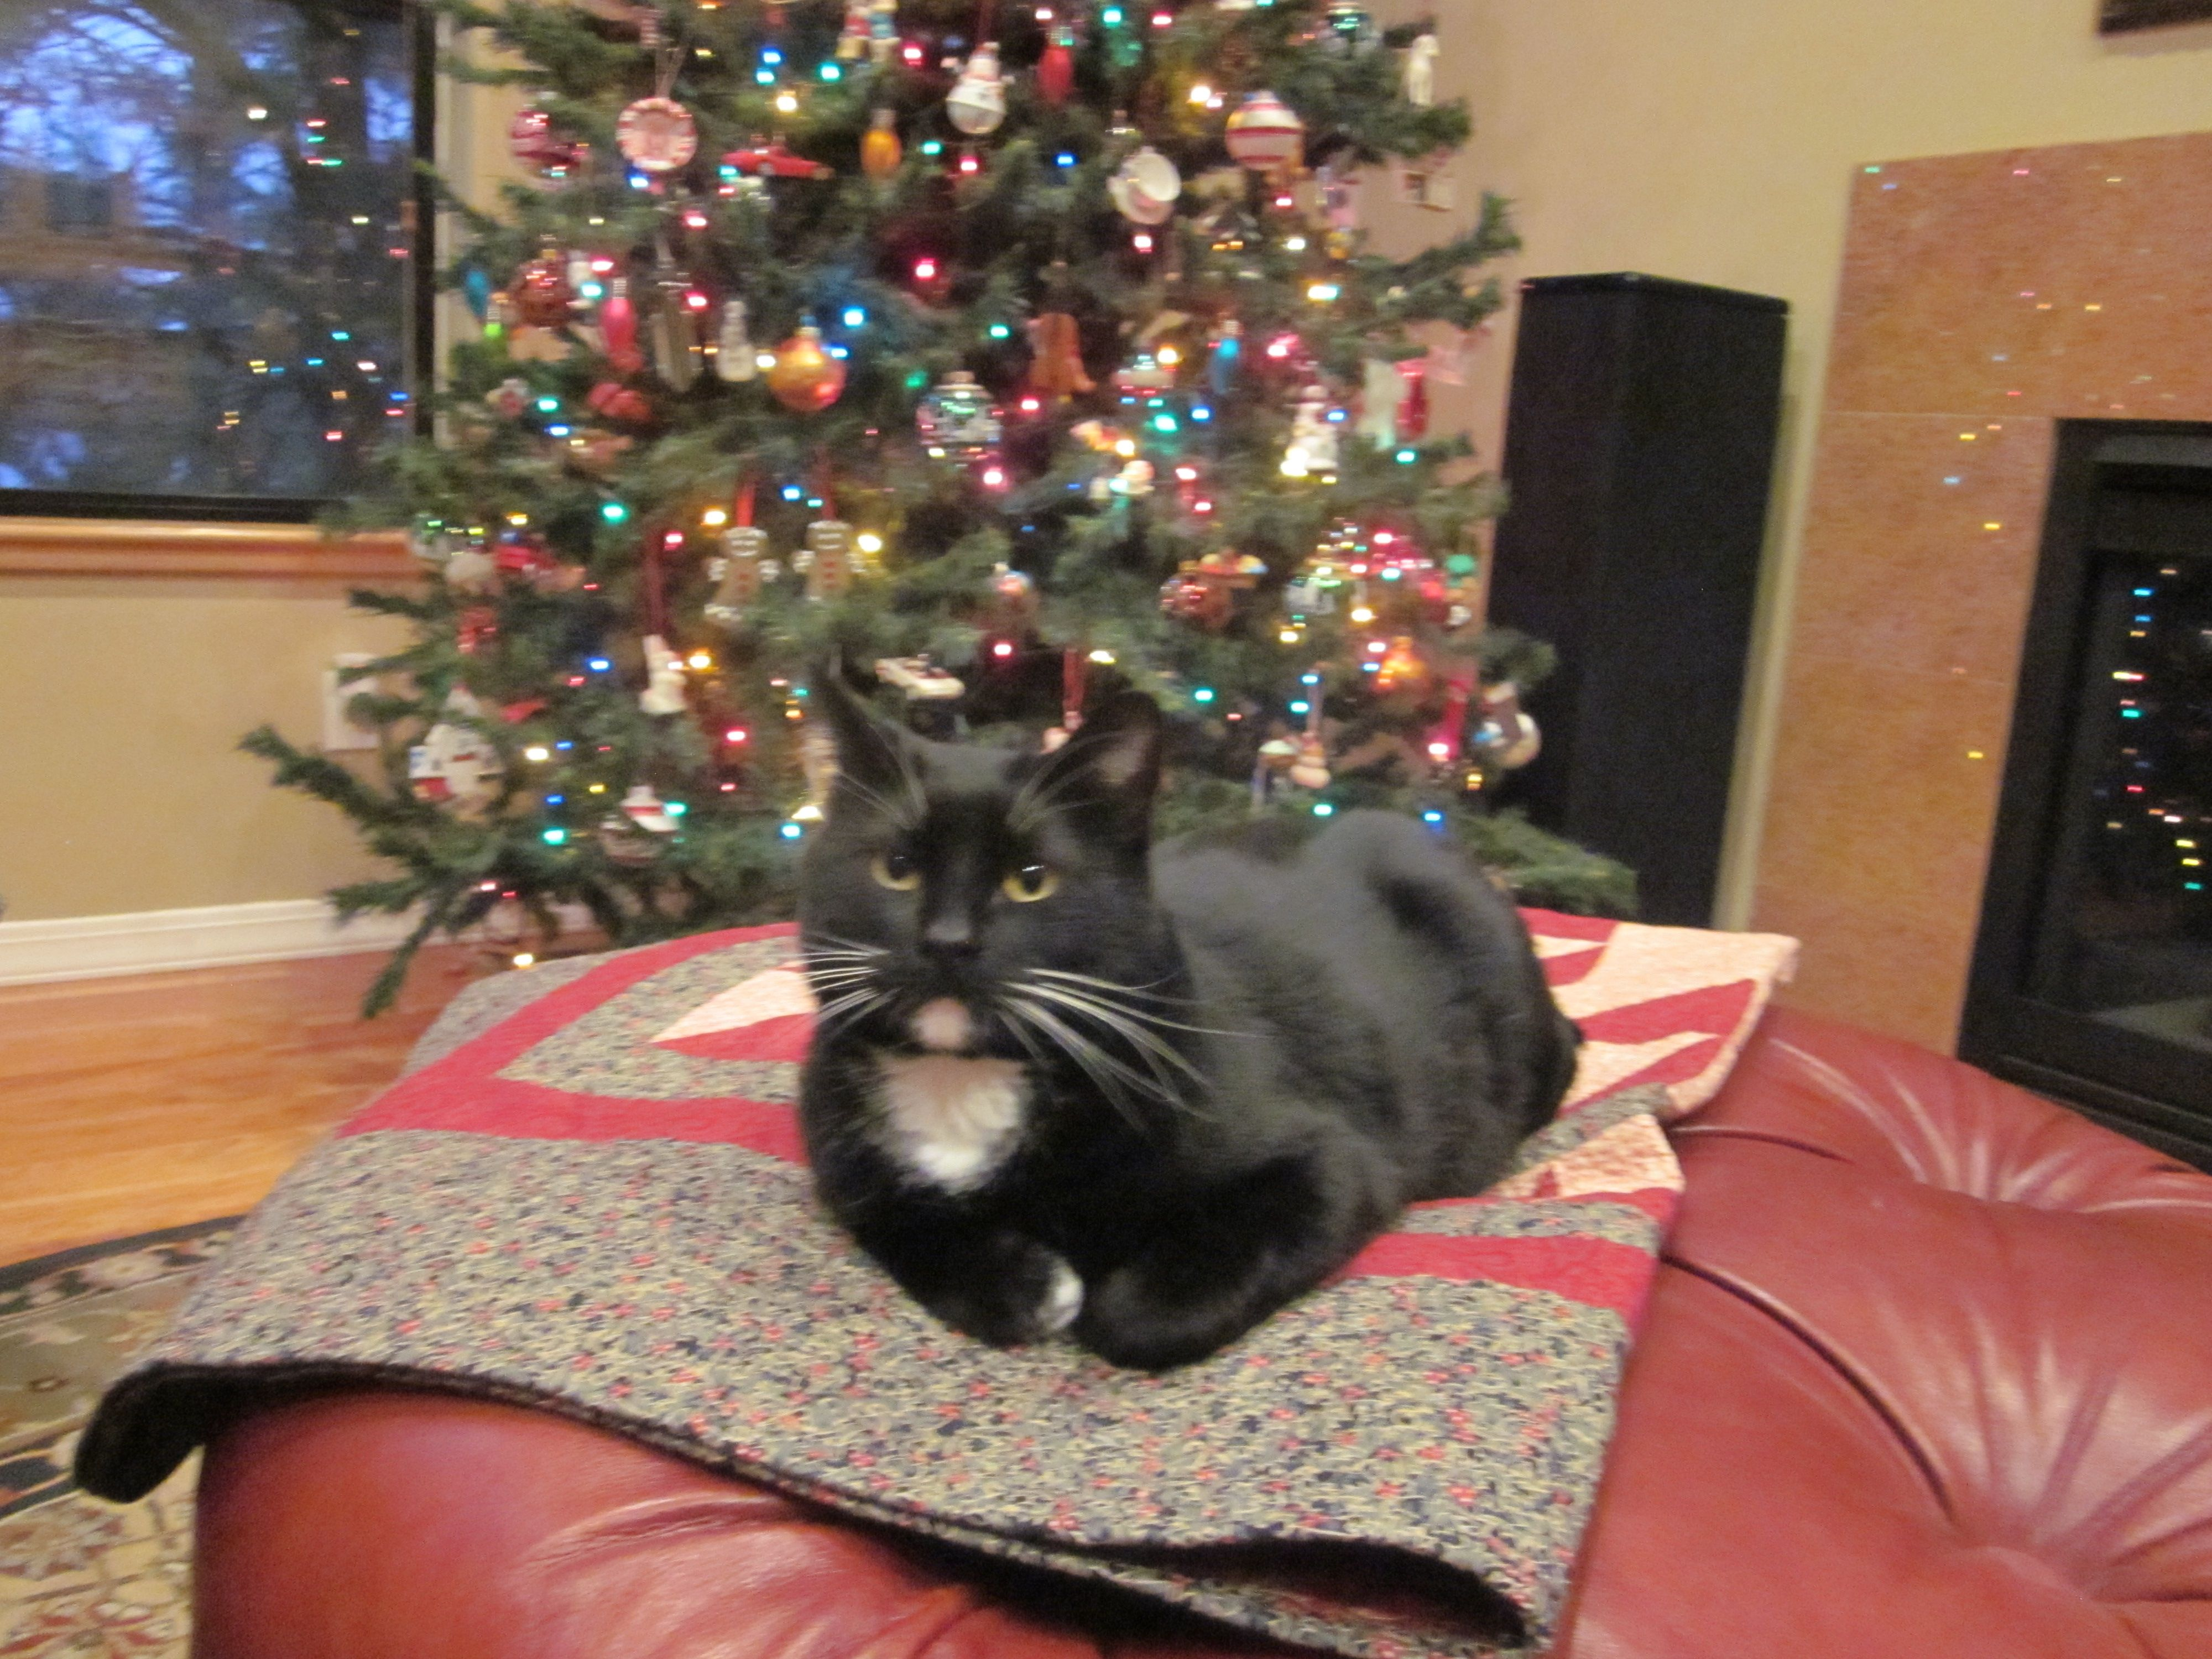 Mooch has a quilt and a Christmas tree Christmas tree